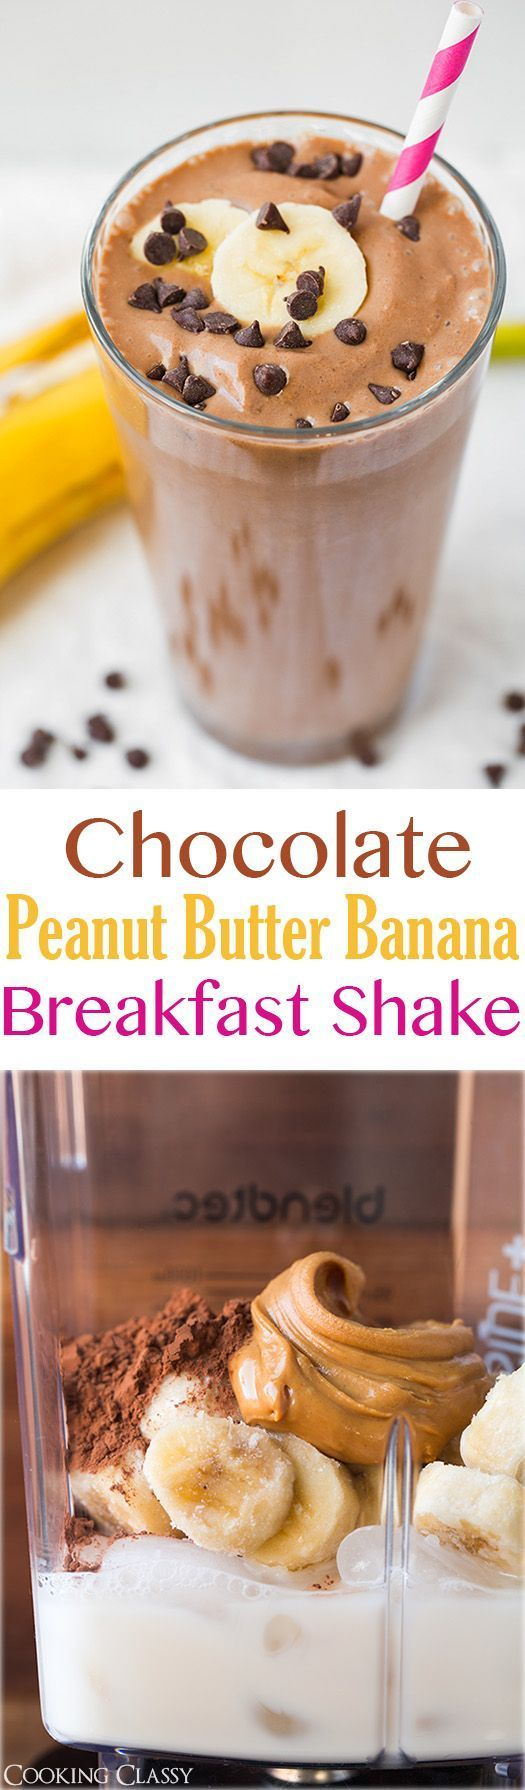 Chocolate Peanut Butter Banana Breakfast Shake healthy easy to make and tastes like a shake!